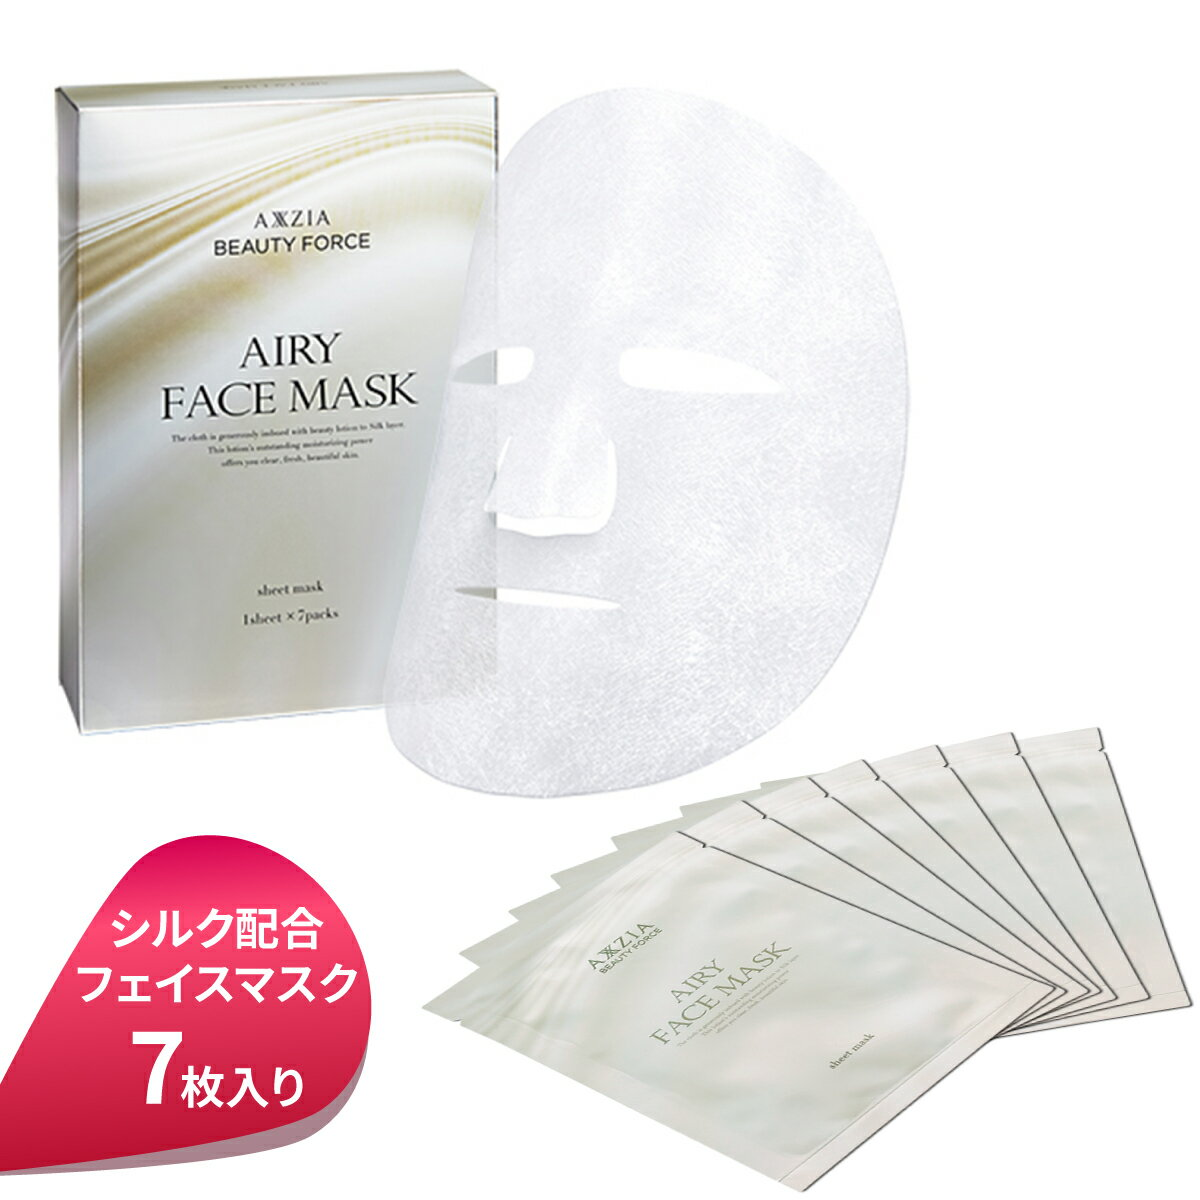 BEAUTY FORCE AIRY FACE MASK / 本体 / 28枚